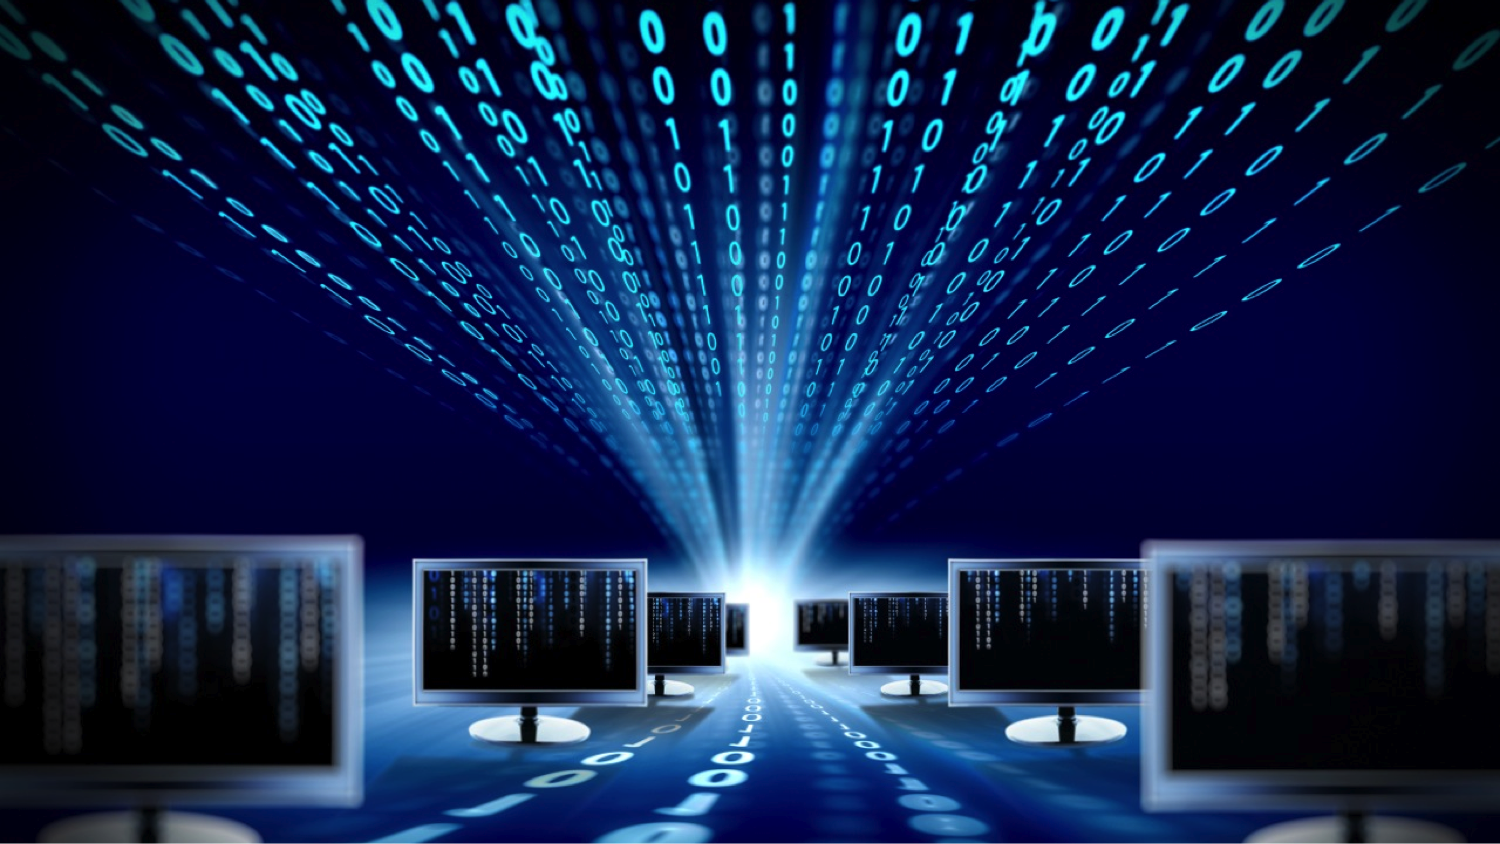 e commerce internet and transmits computer readable data